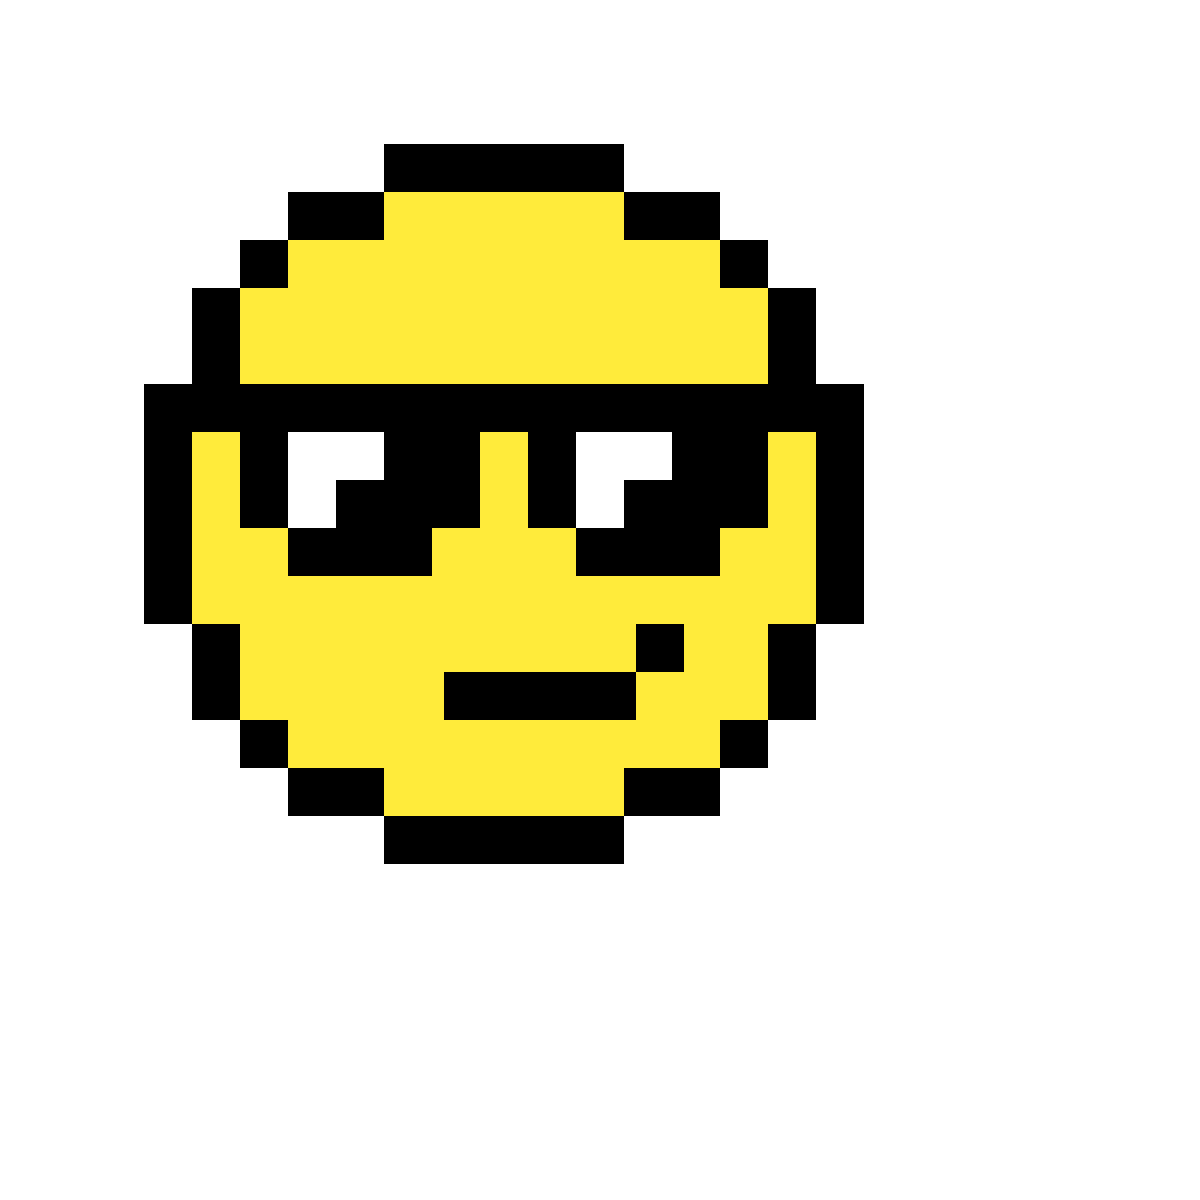 Pixilart Cool Face Emoji By Powerful Pickle